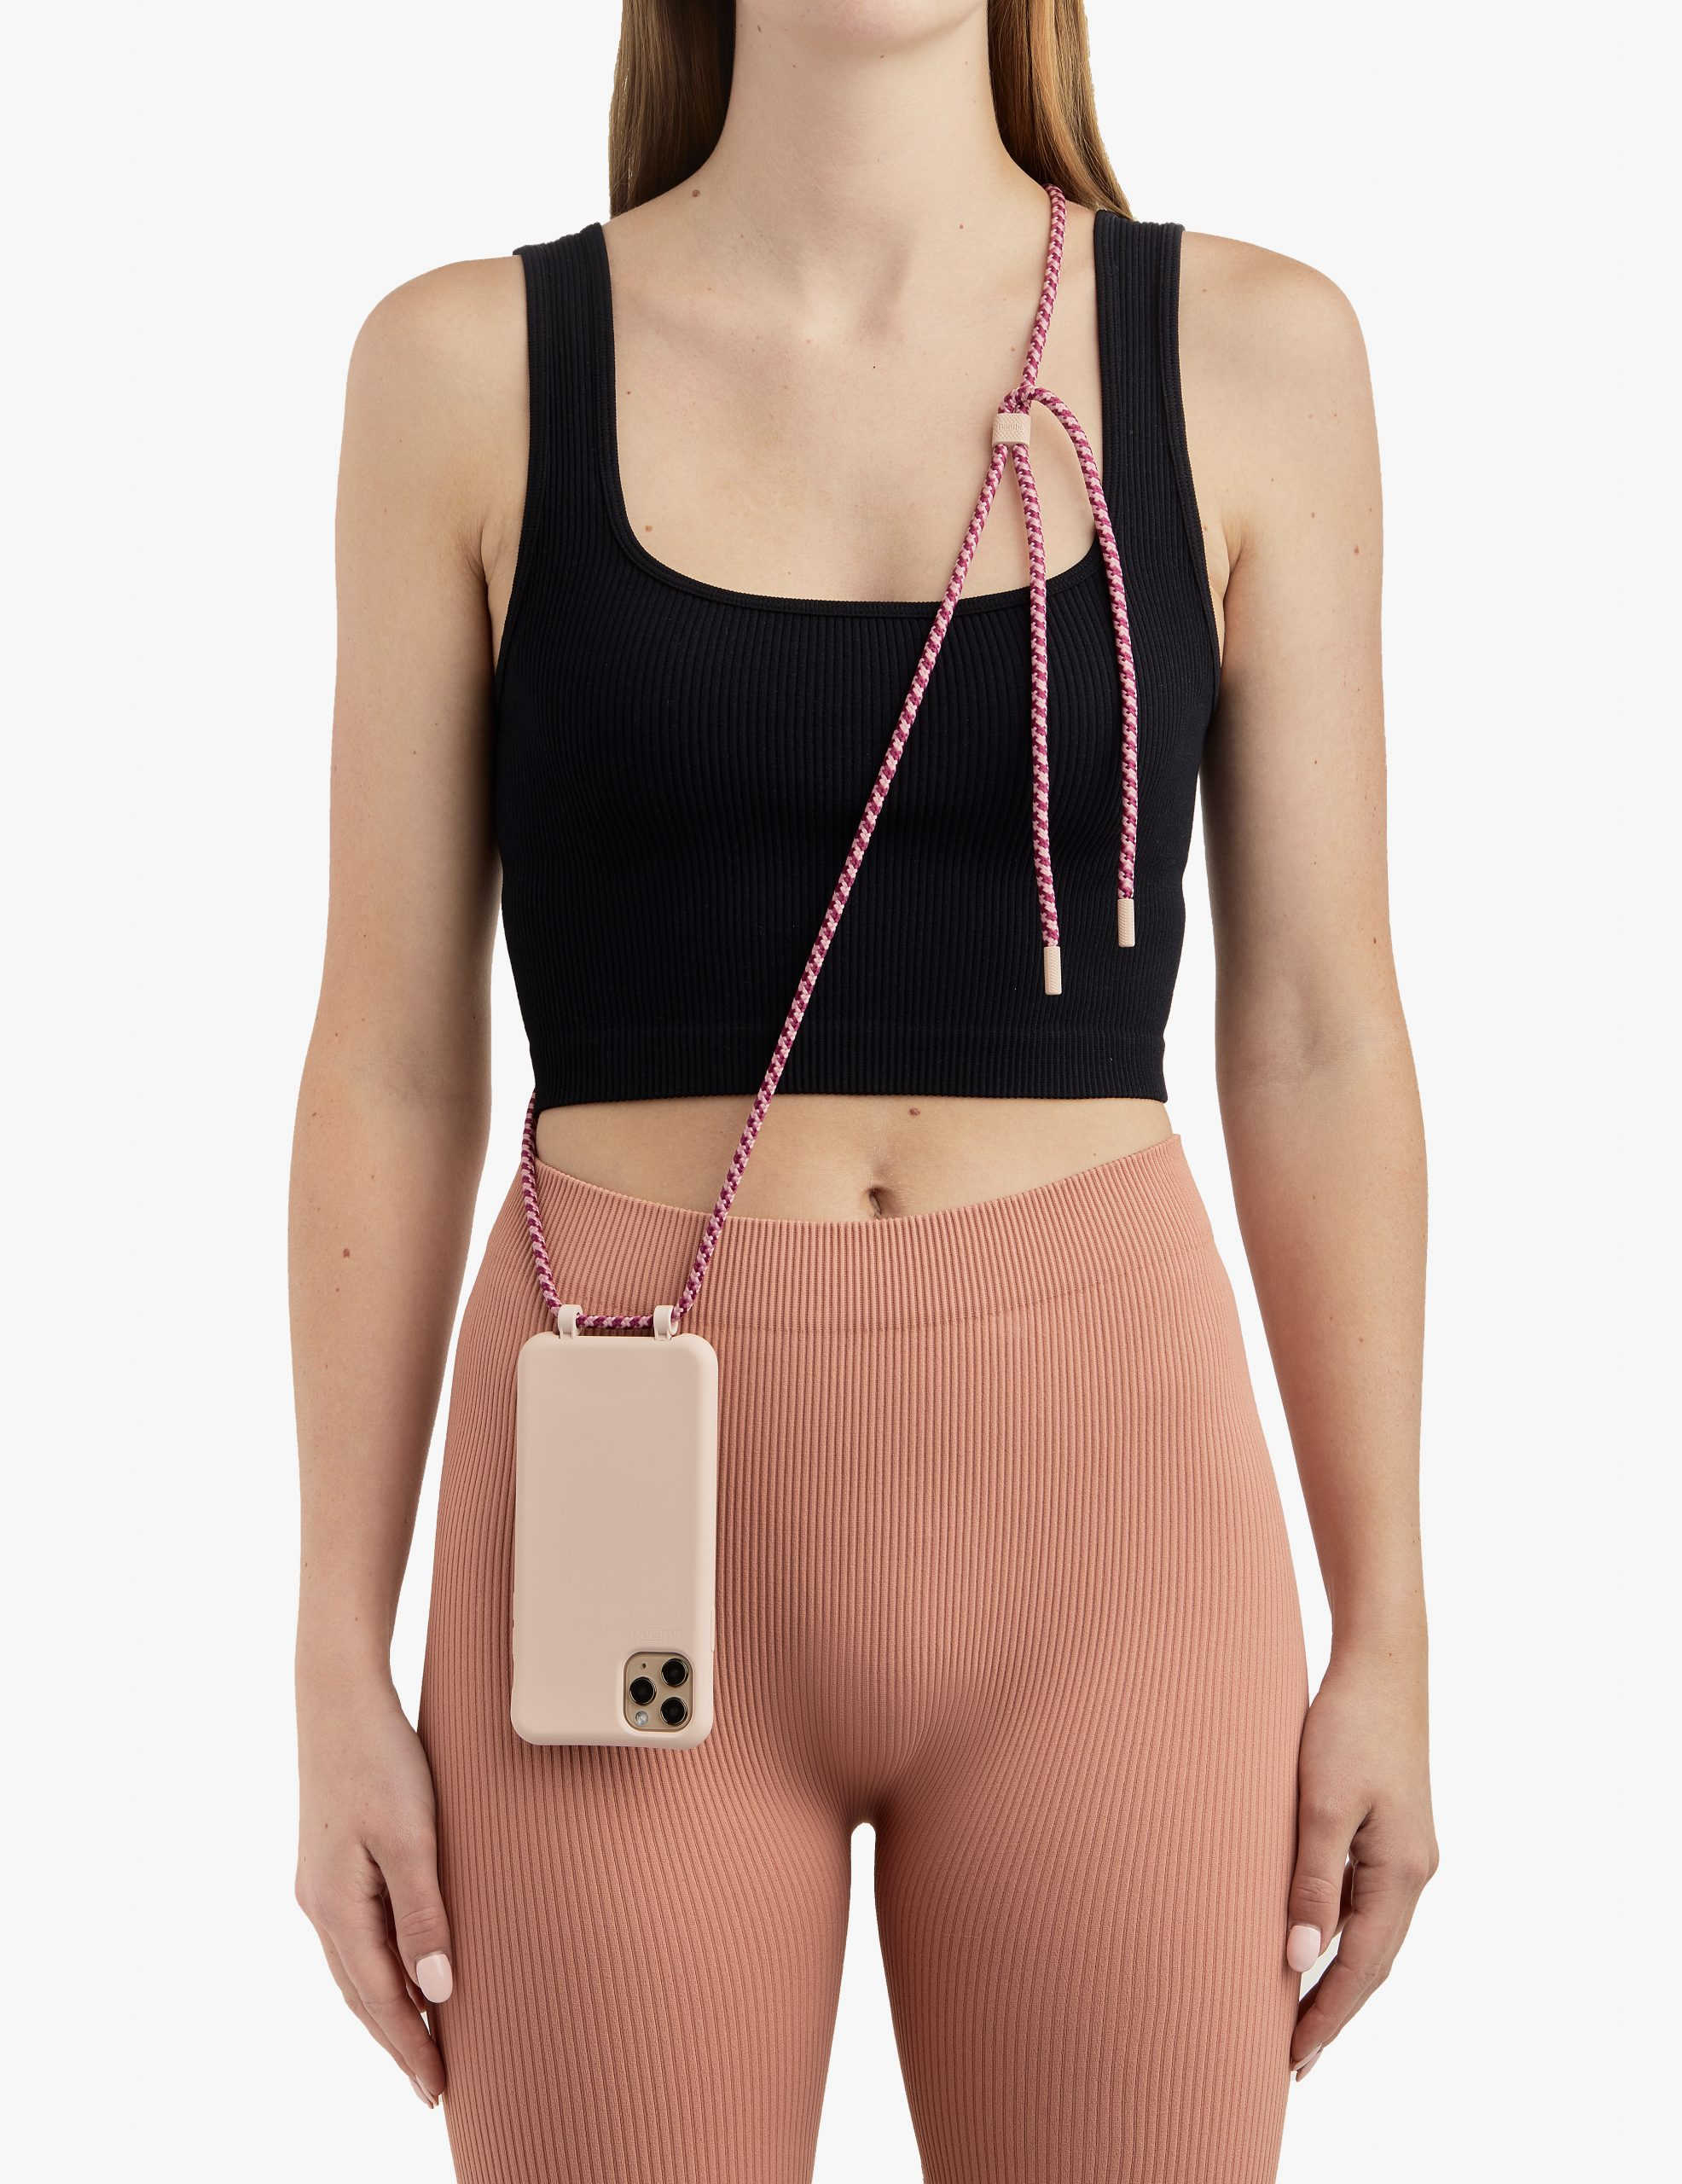 Bonibi-Crossbody-Phone-Case-iPhone-Pink-Dust-Case-Passion-Fruit-Cord-Pink-Dust-Hardware-Necklace-Lanyard-Lifestyle-Phone-Case-With-Strap-Neck Holder-Card Holder-Tether-Carrier-Functional